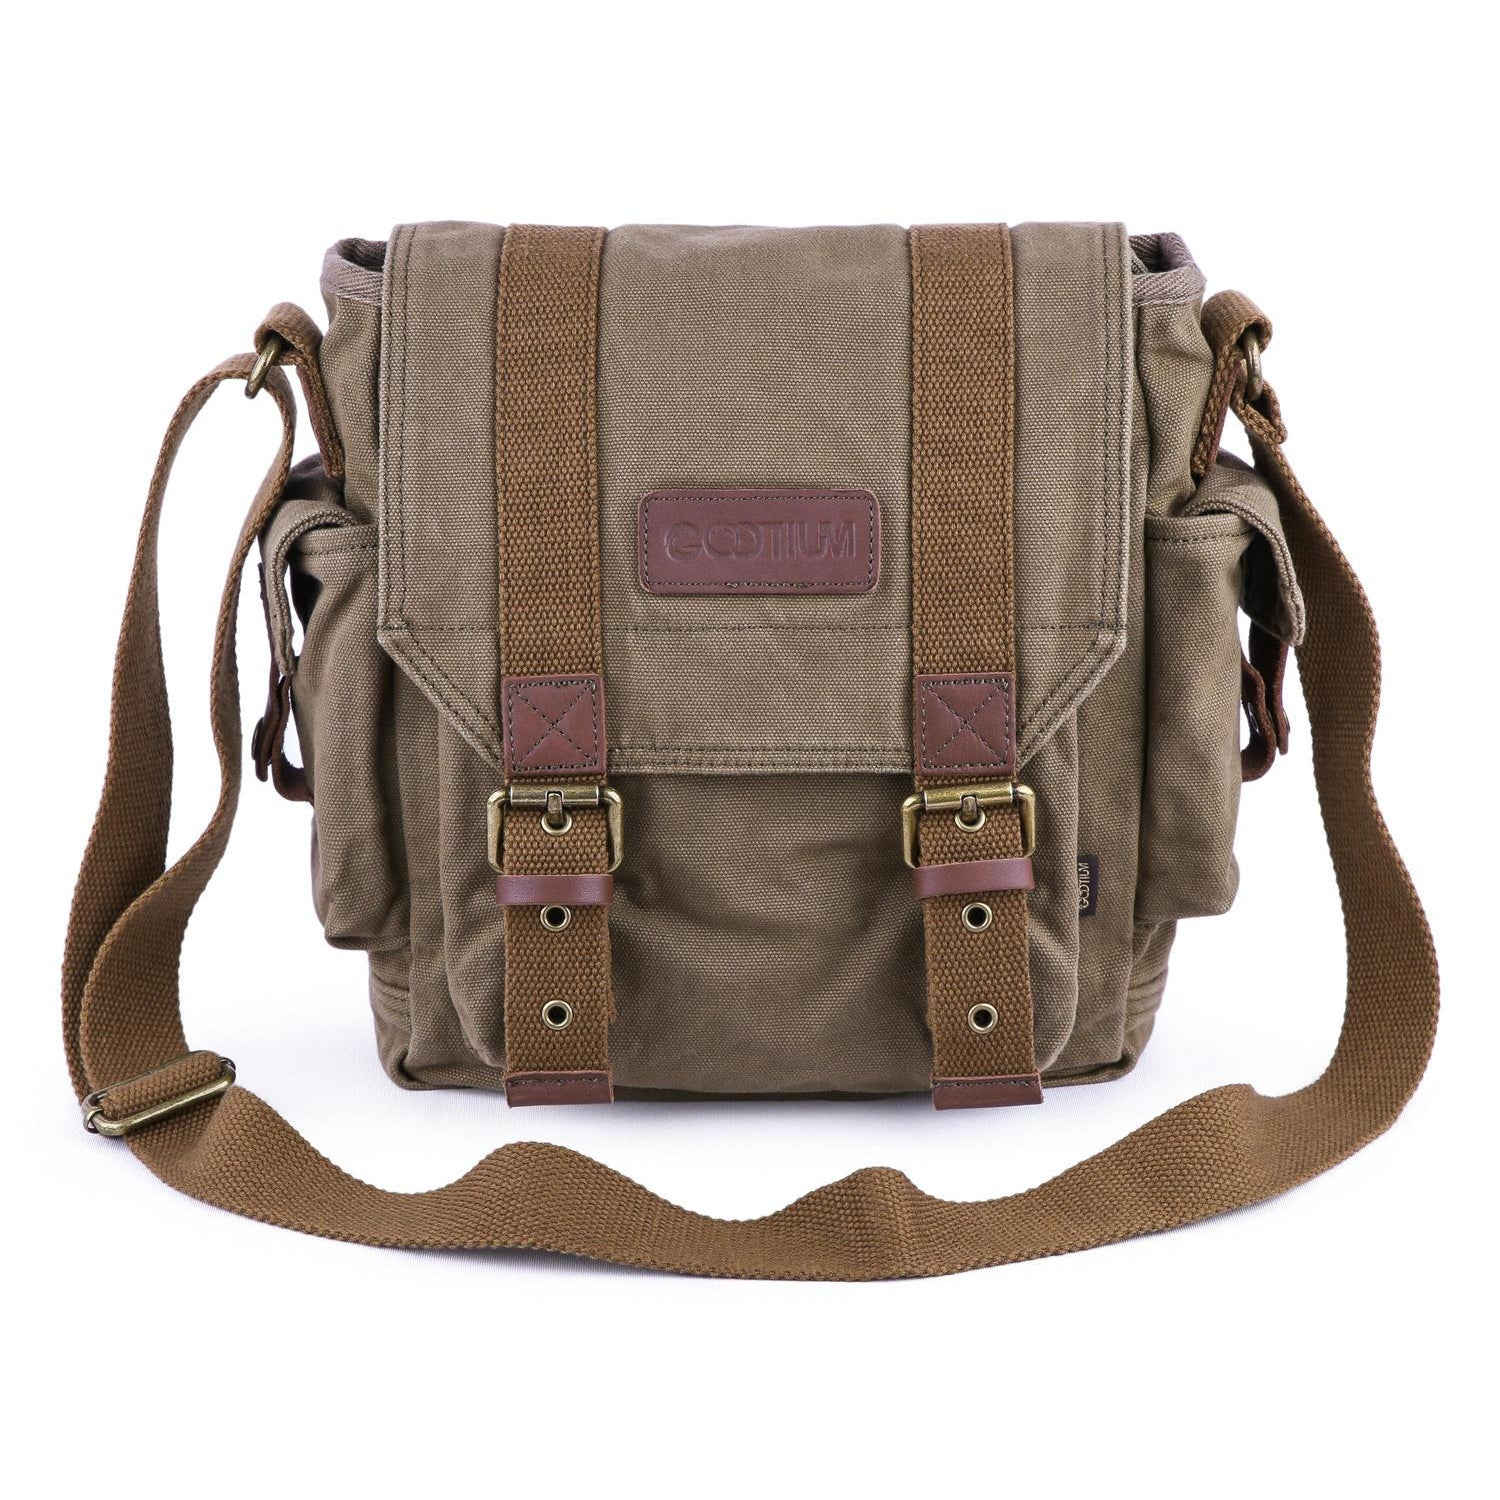 10 Best Canvas Messenger Bag - Gootium